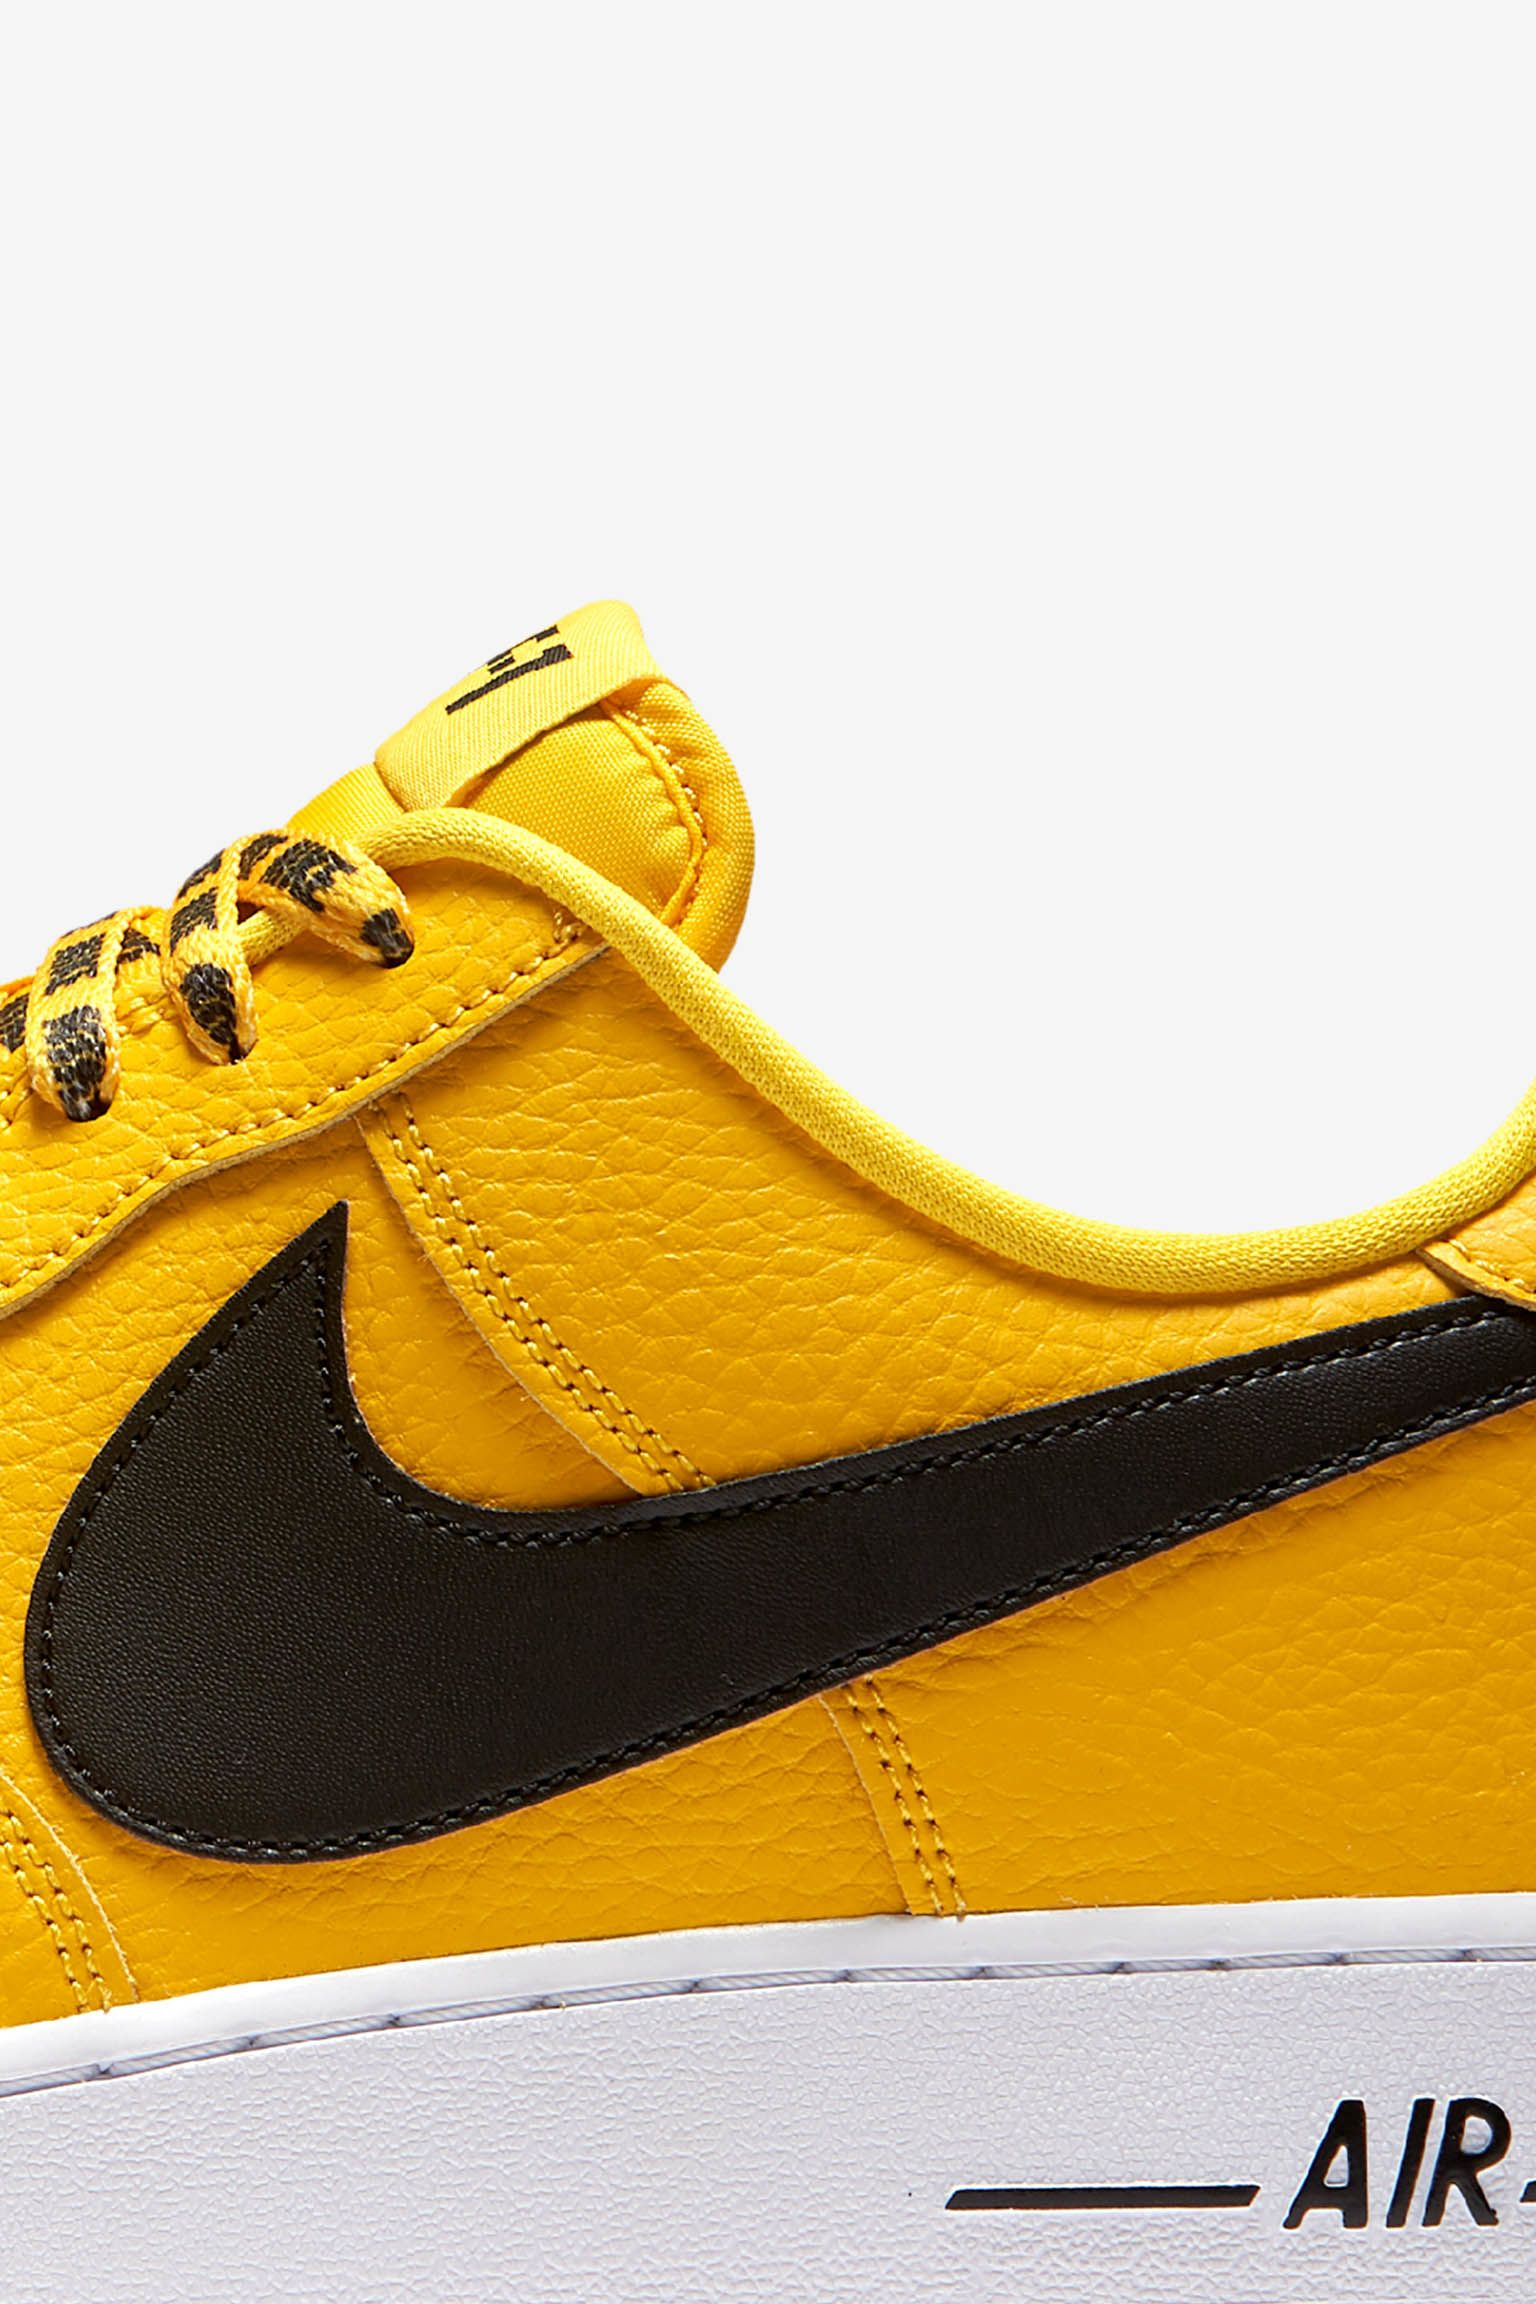 Nike AF-1 Low NBA 'Amarillo & Black & White' Release Date